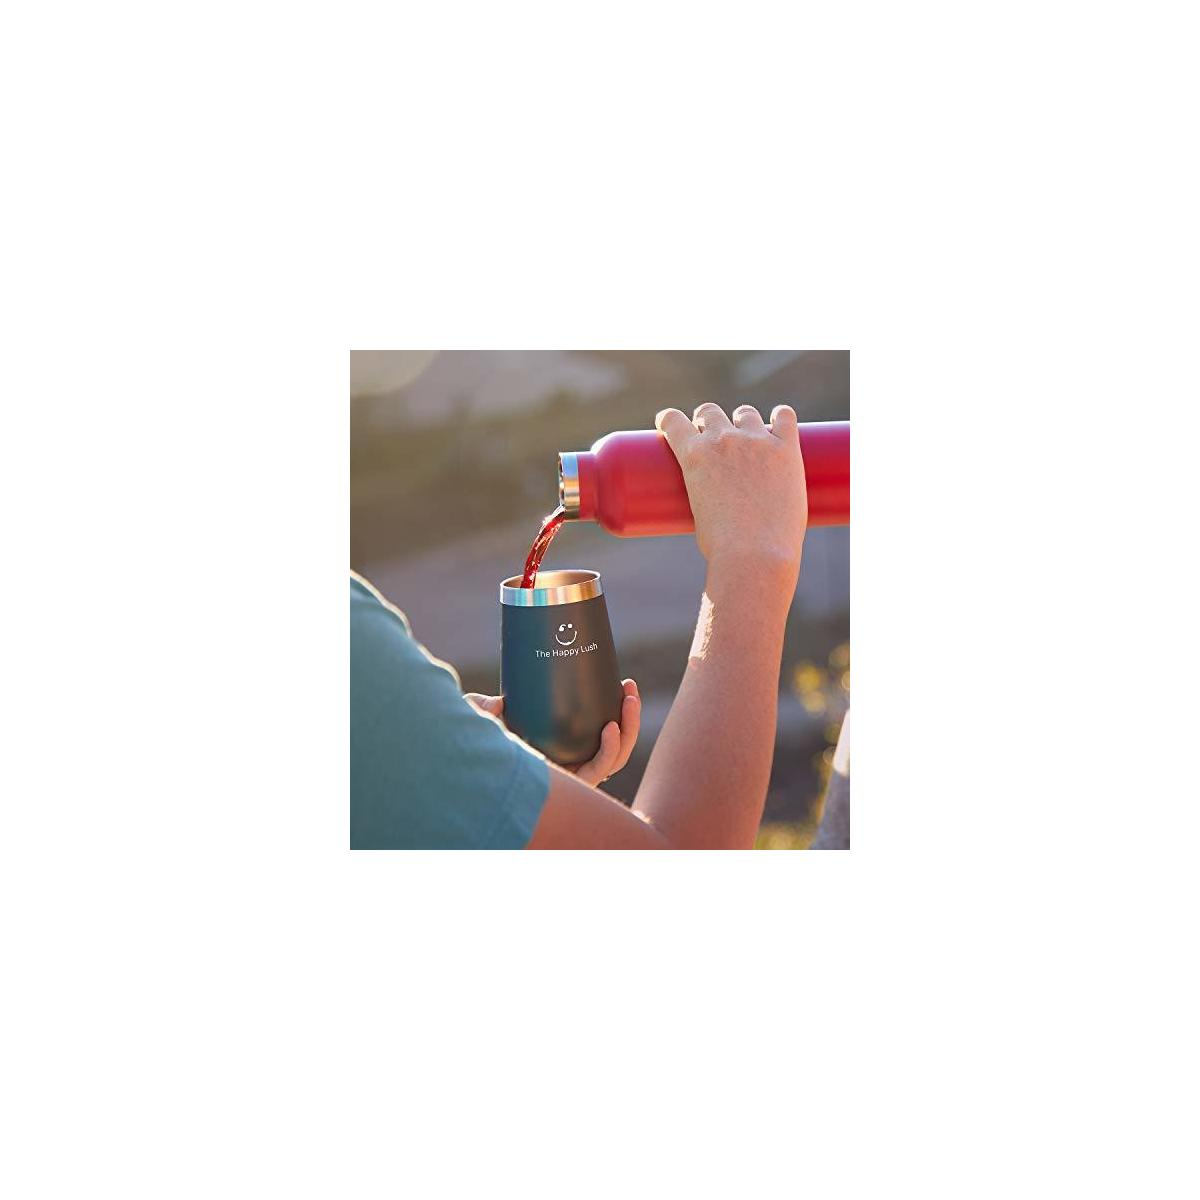 The Happy Lush Stainless Steel Wine Tumbler with Spill-Proof Lid: 12 oz Stemless Wine Glass Tumbler- Rose Gold